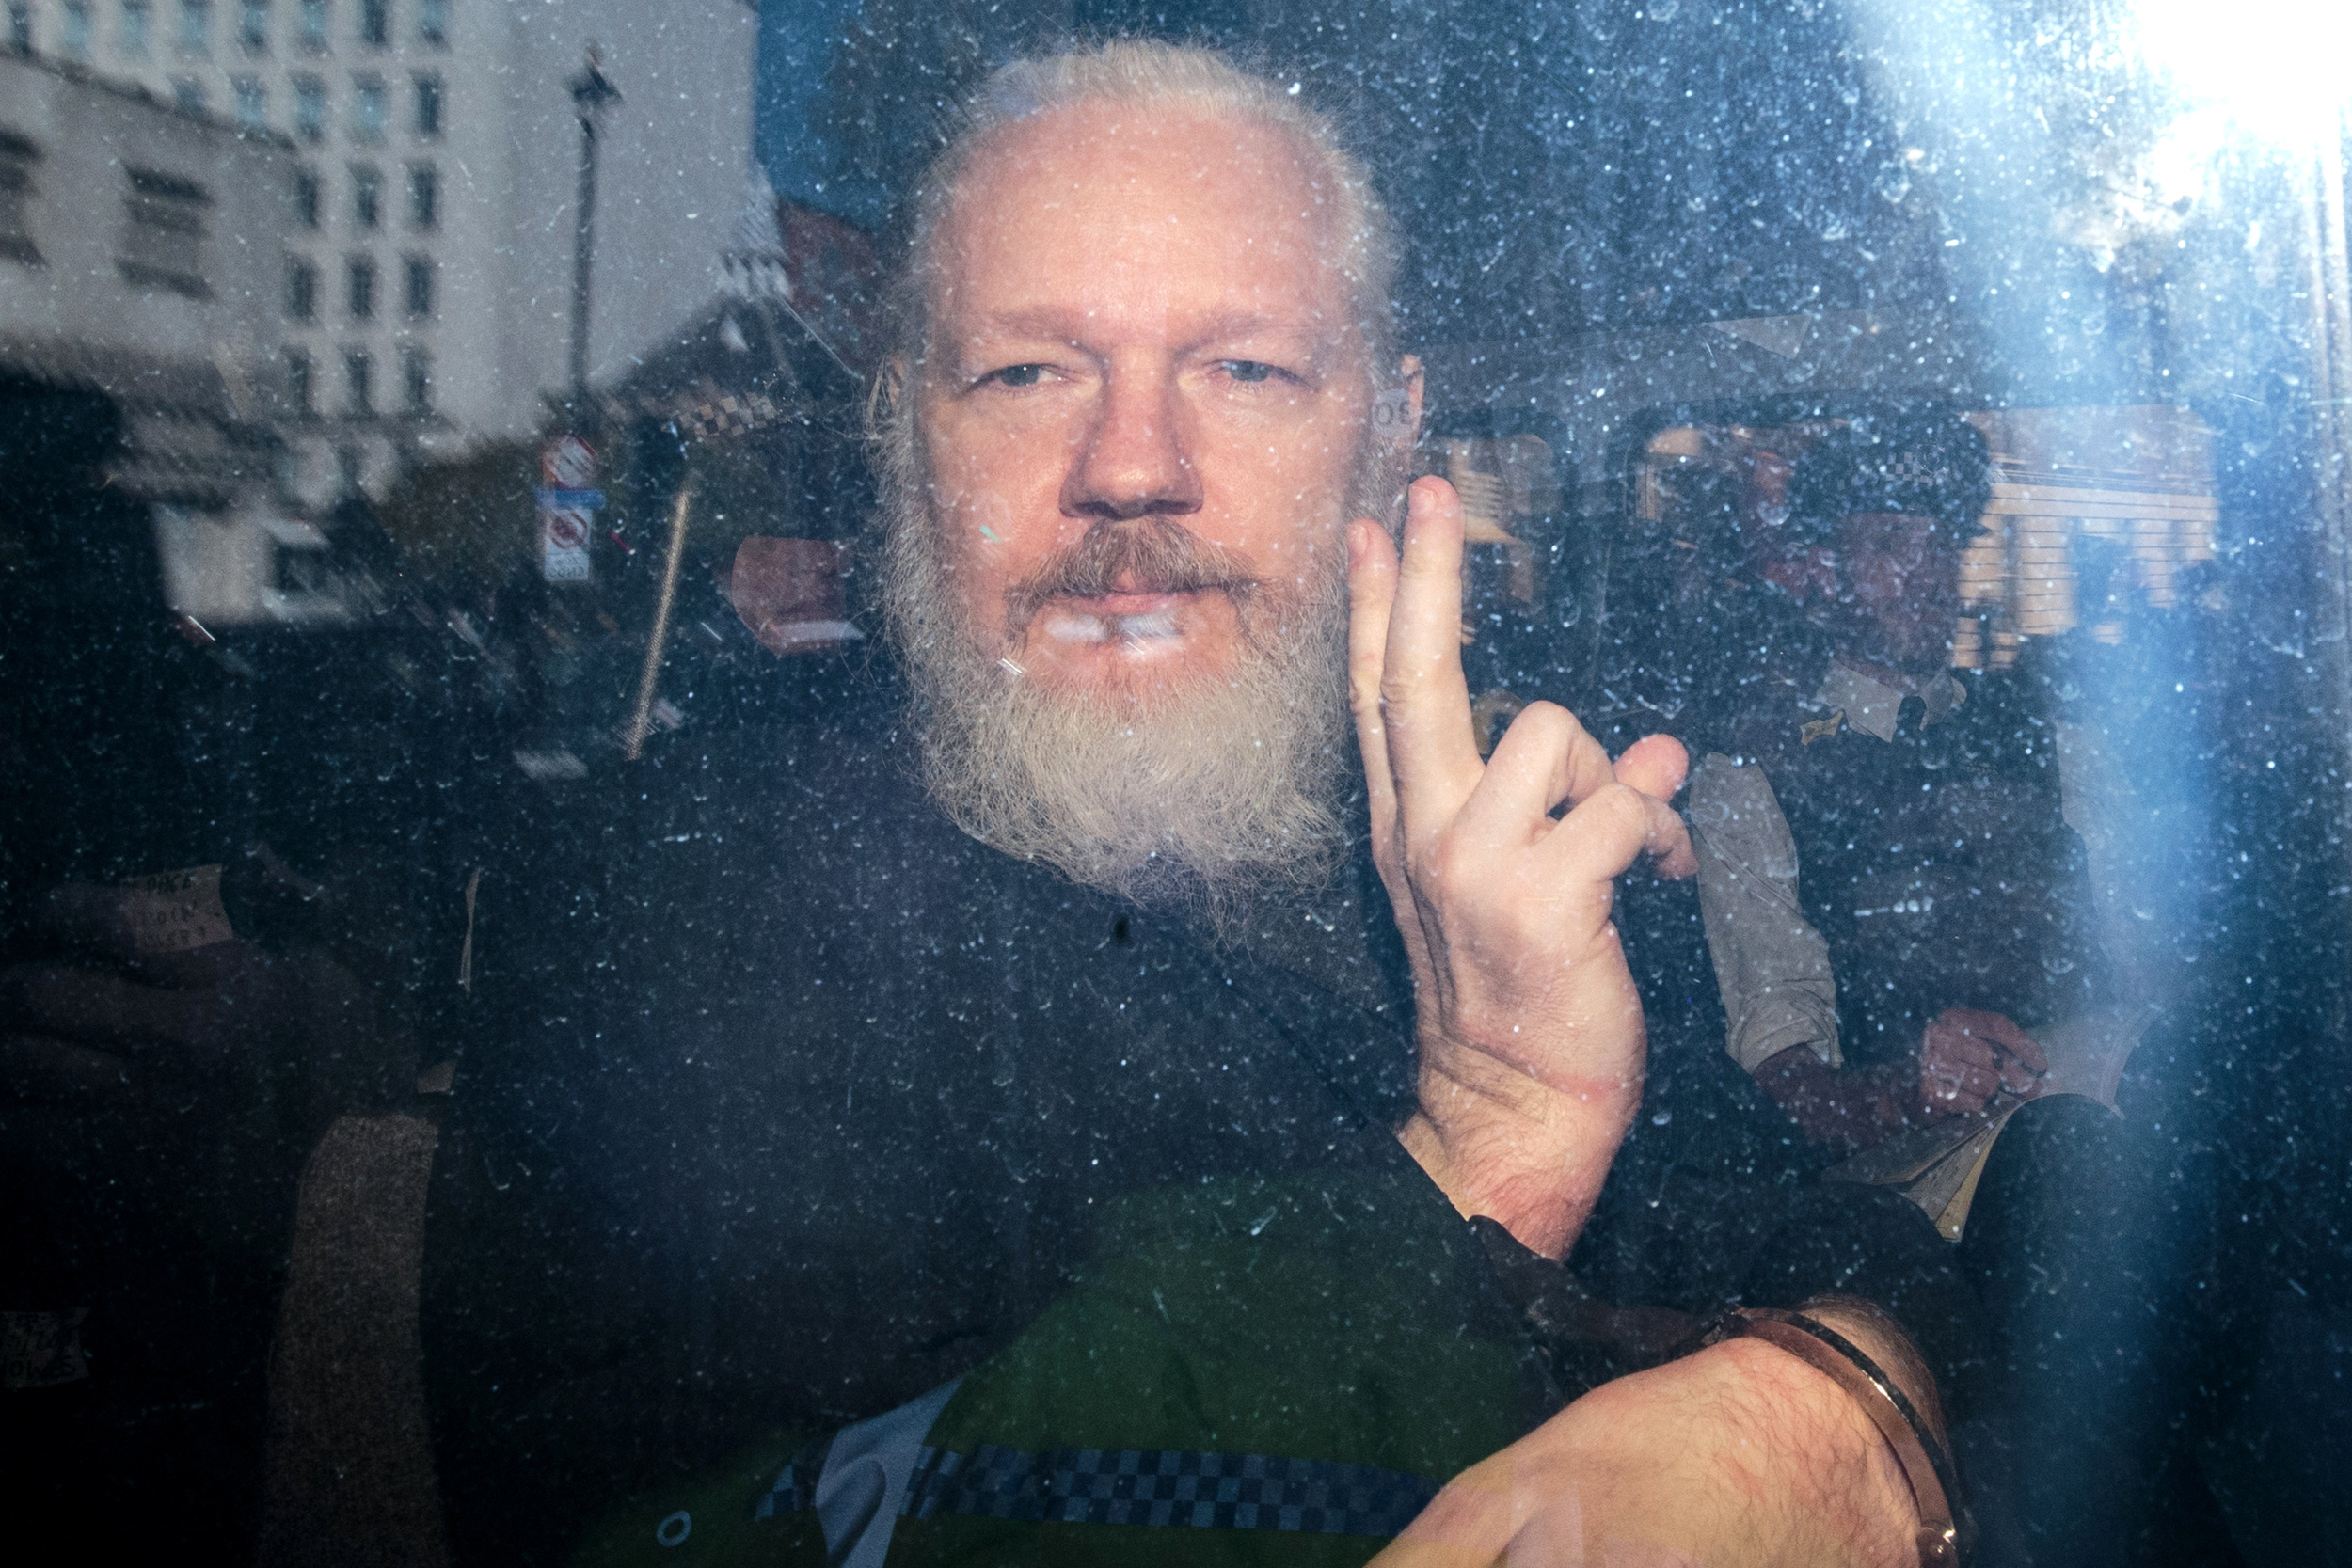 WikiLeaks' Julian Assange cannot be extradited to the U.S. to face  espionage charges, U.K. court rules